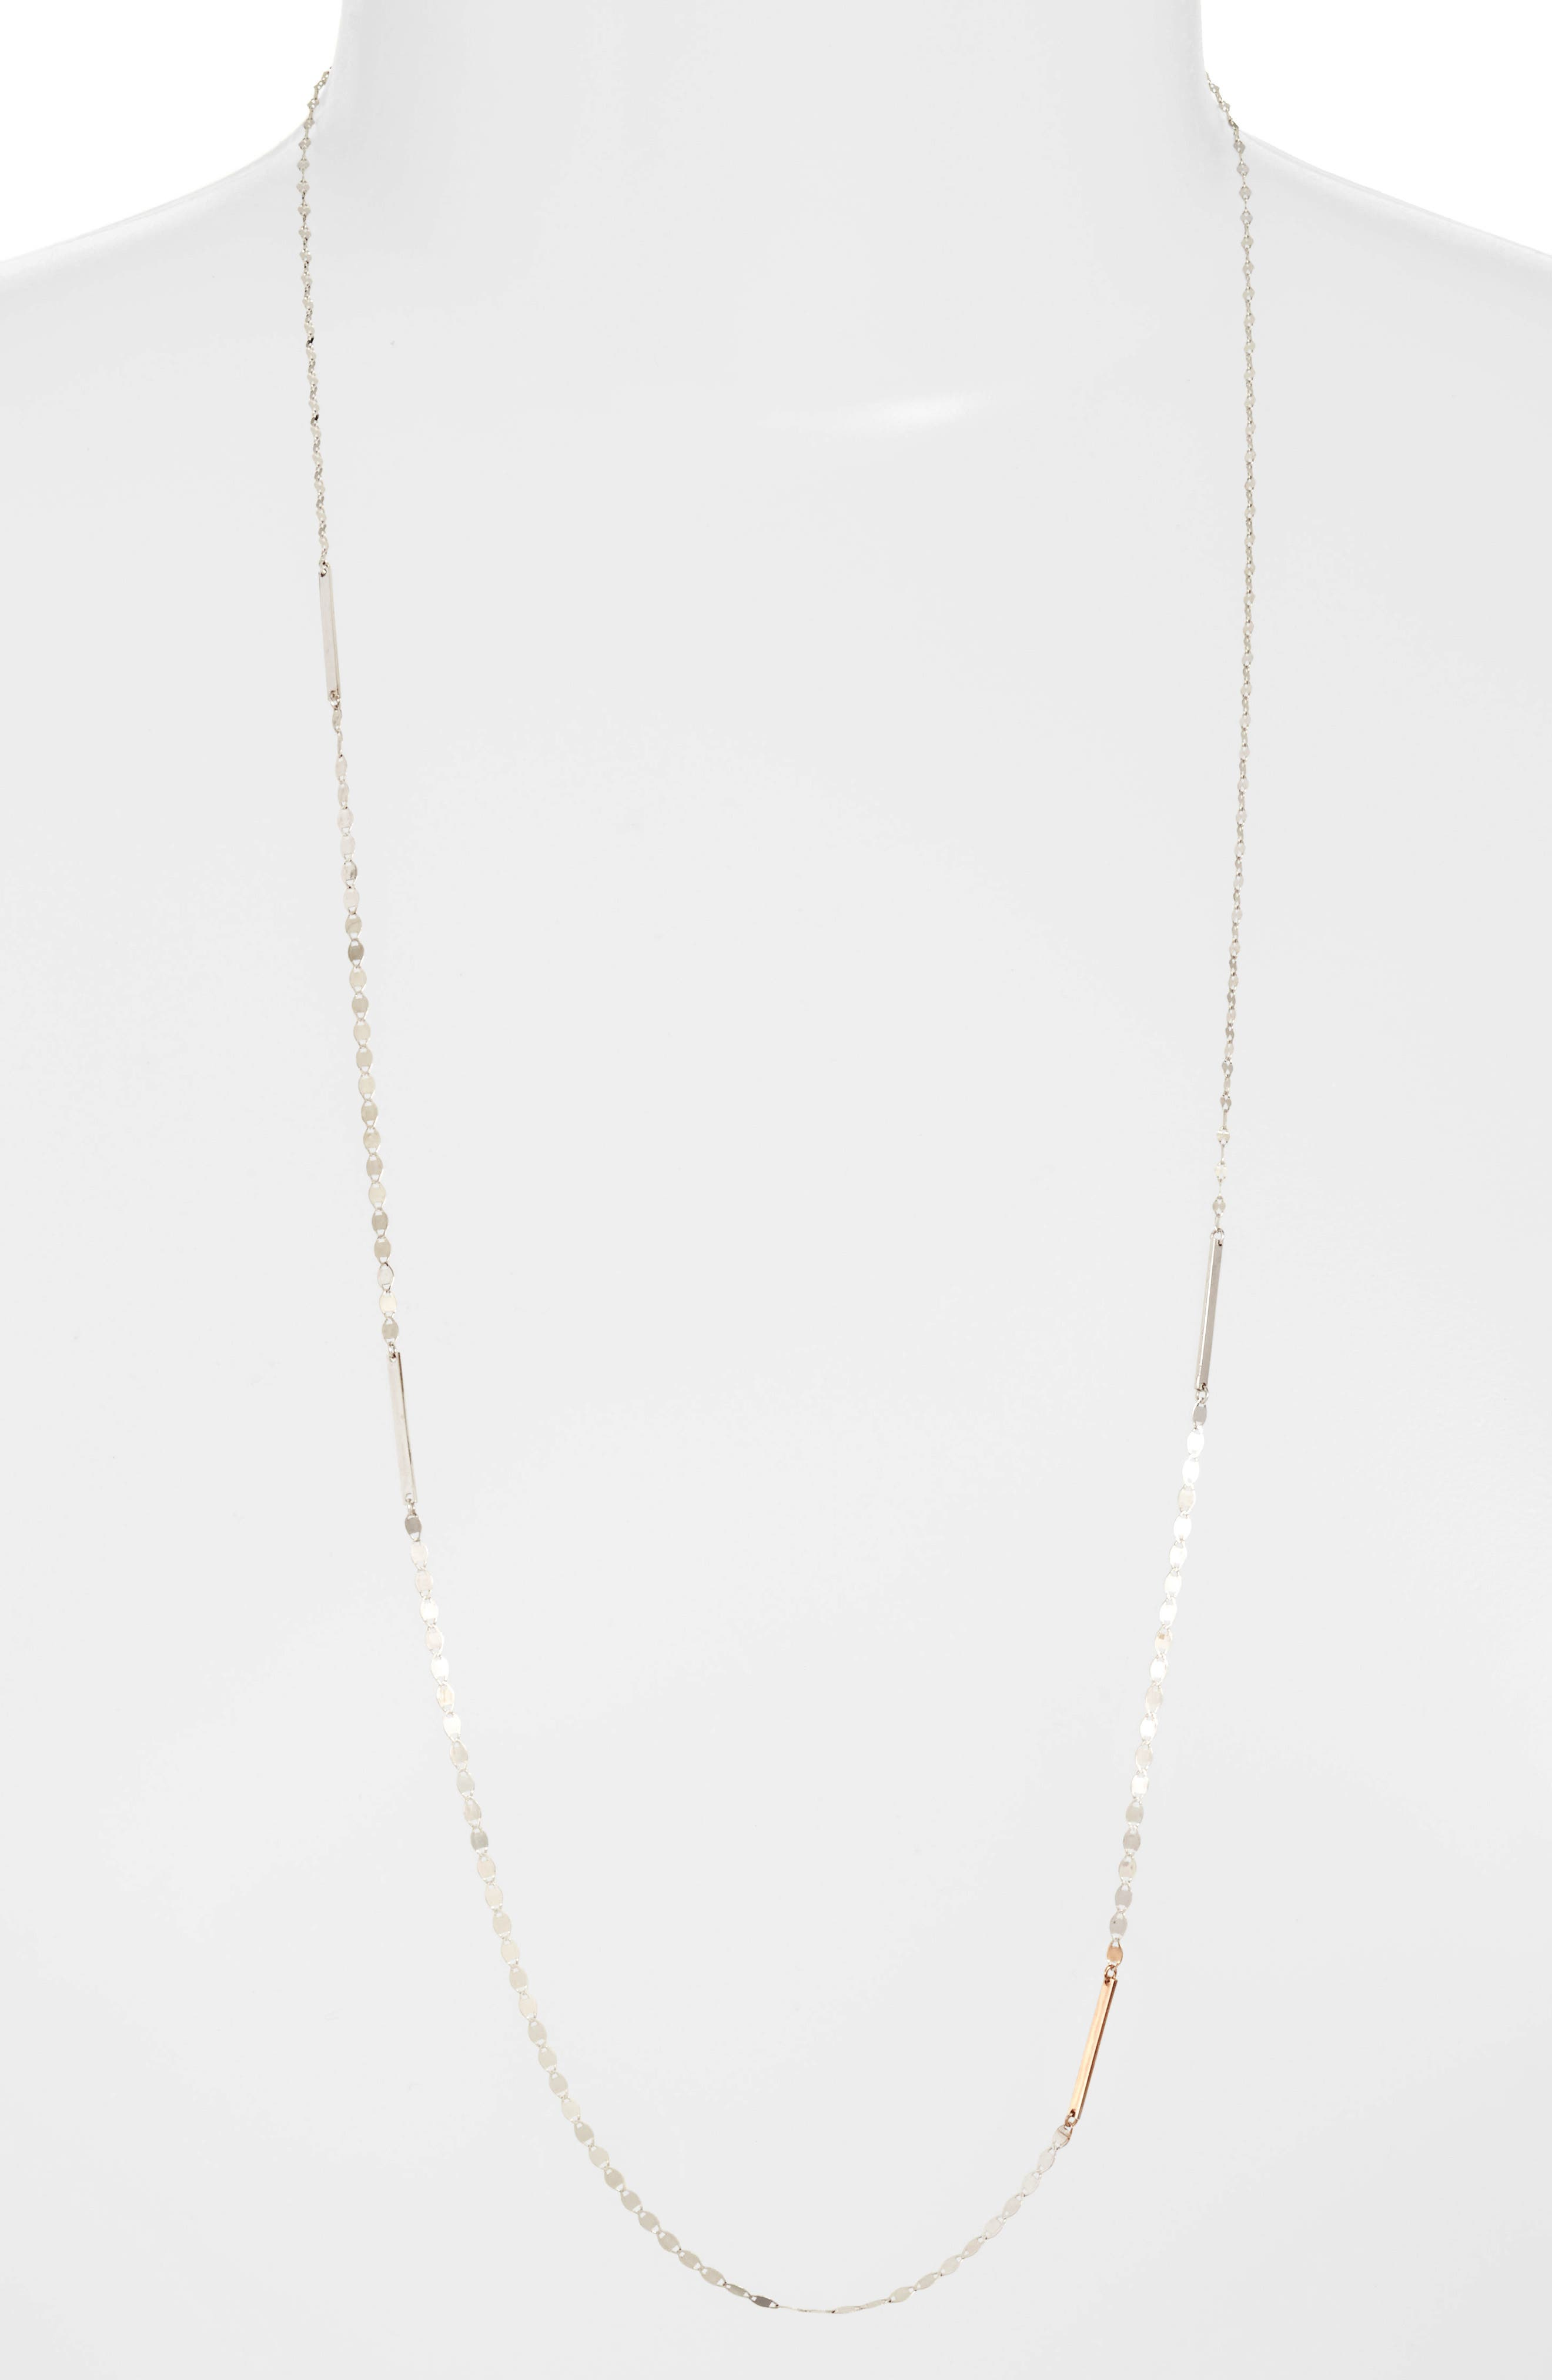 Nude Remix Bar Long Necklace,                         Main,                         color, White Gold